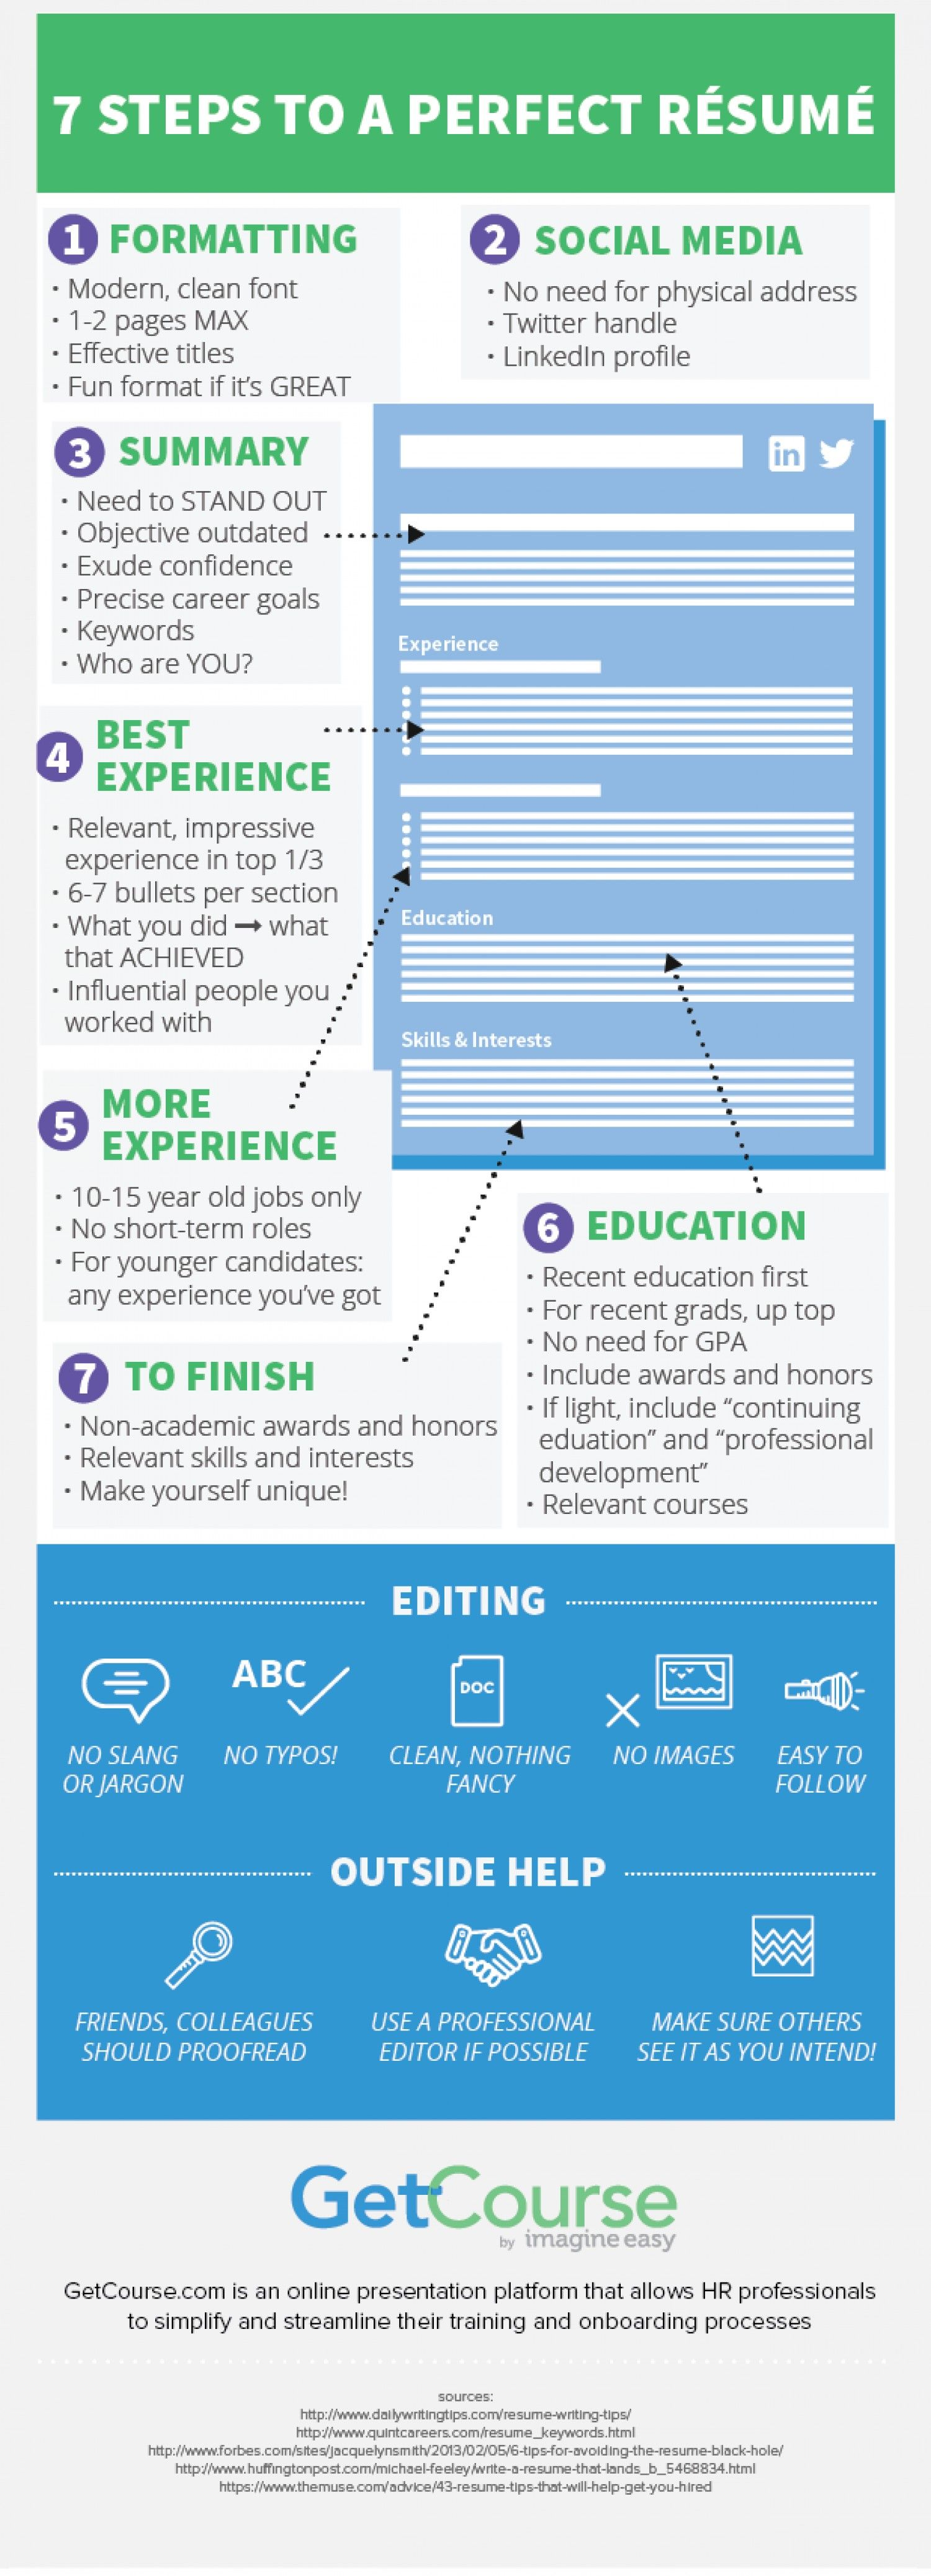 How To Make A Perfect Resume Step By Step Extraordinary 7 Steps To A Perfect #resume #careers  Career Girl  Pinterest .